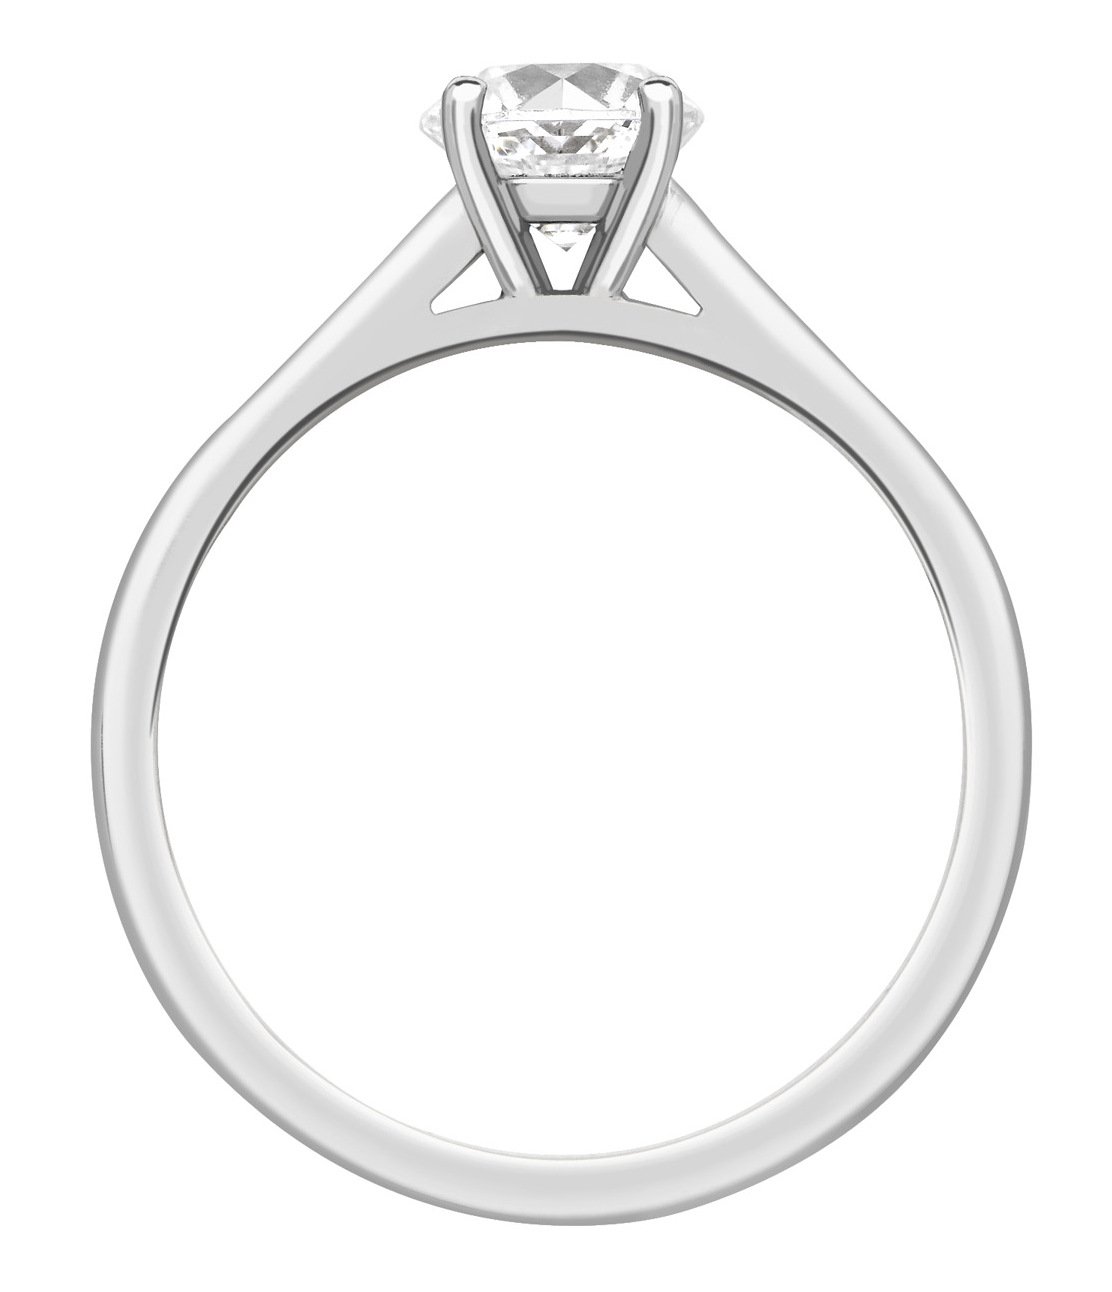 Round 4 Claw Platinum Channel Set Engagement Ring CRC761PLT Image 2